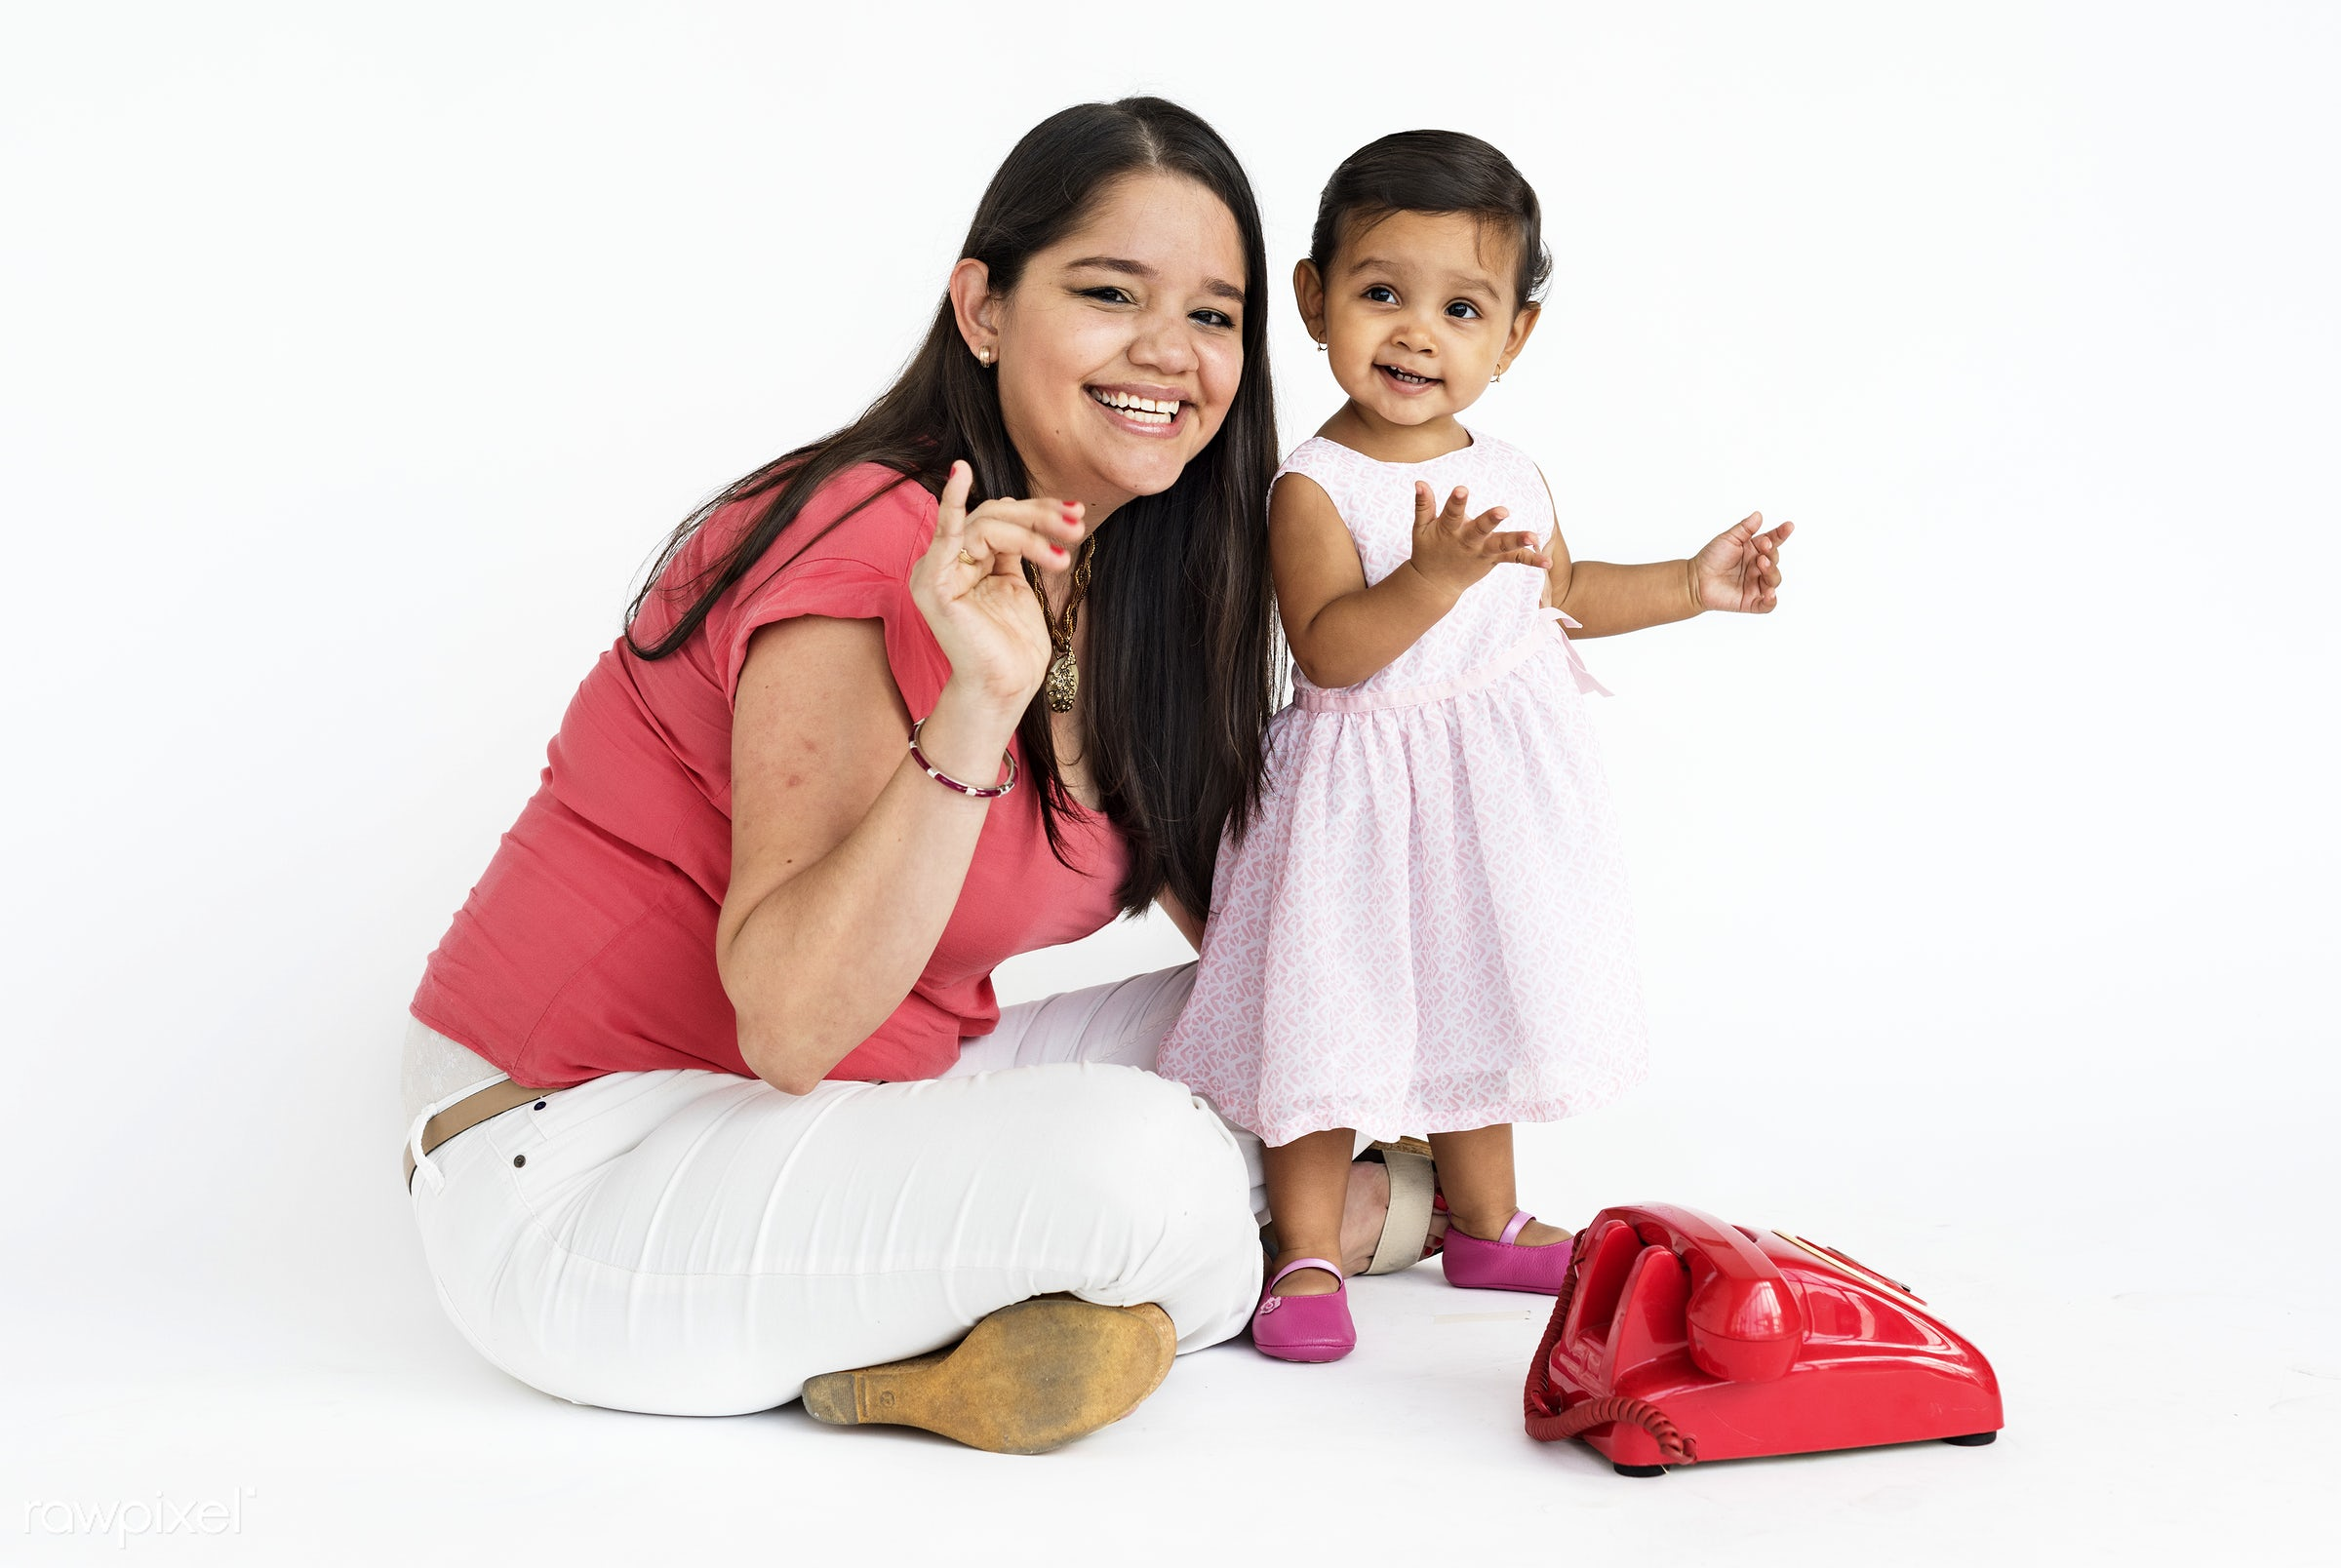 studio, expression, person, people, asian, kid, love, family, woman, childhood, smile, cheerful, smiling, isolated, little...